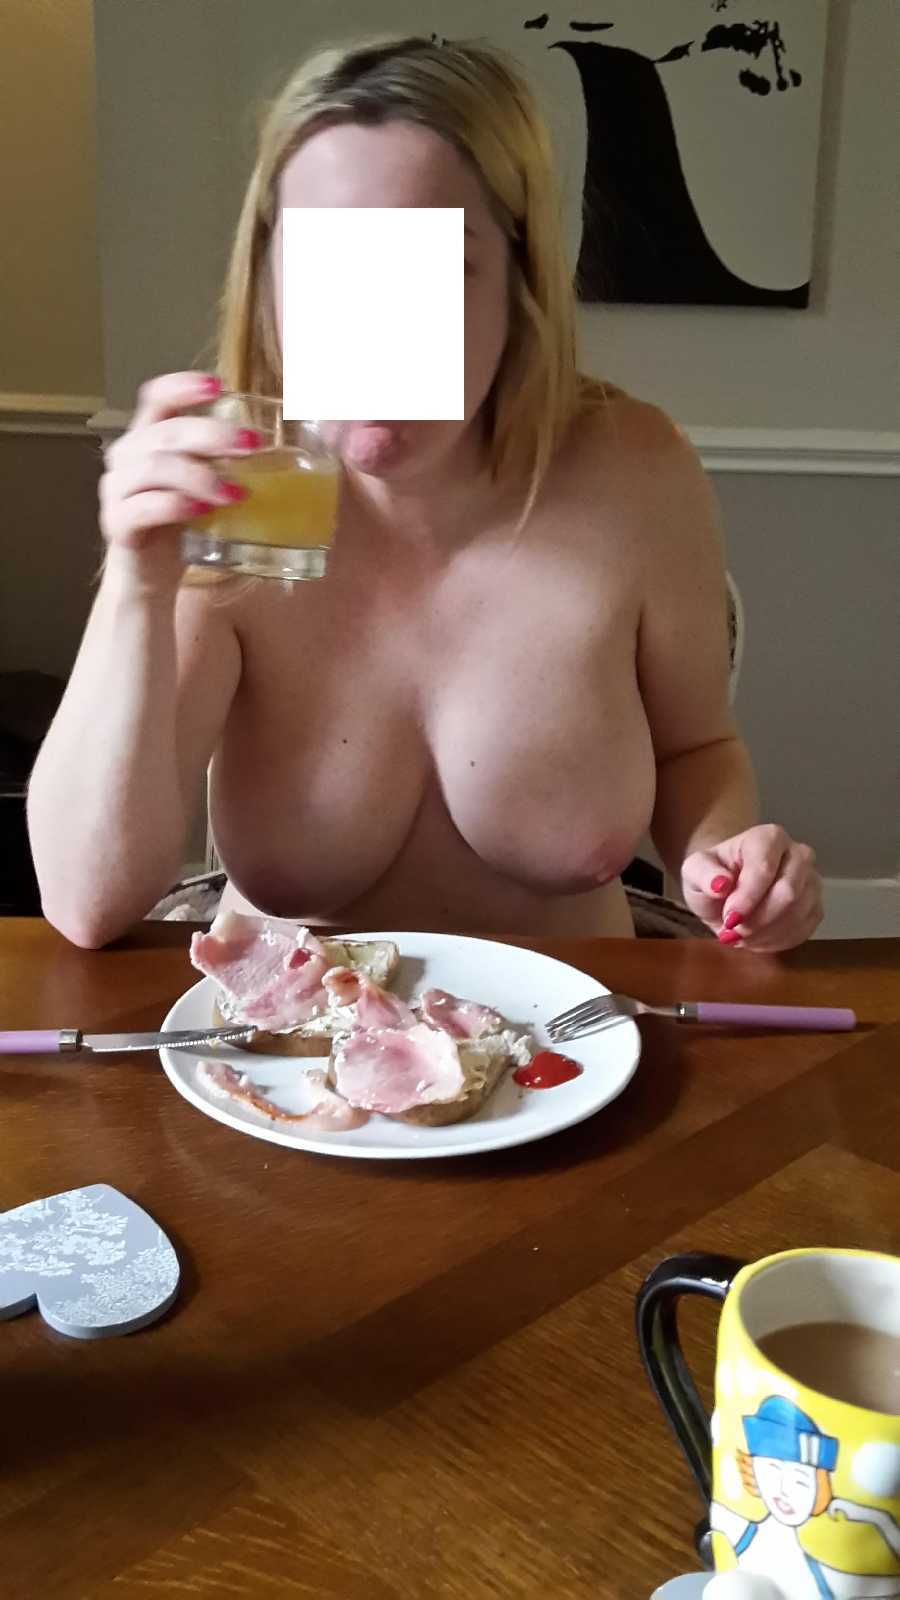 Breakfast & Boobs